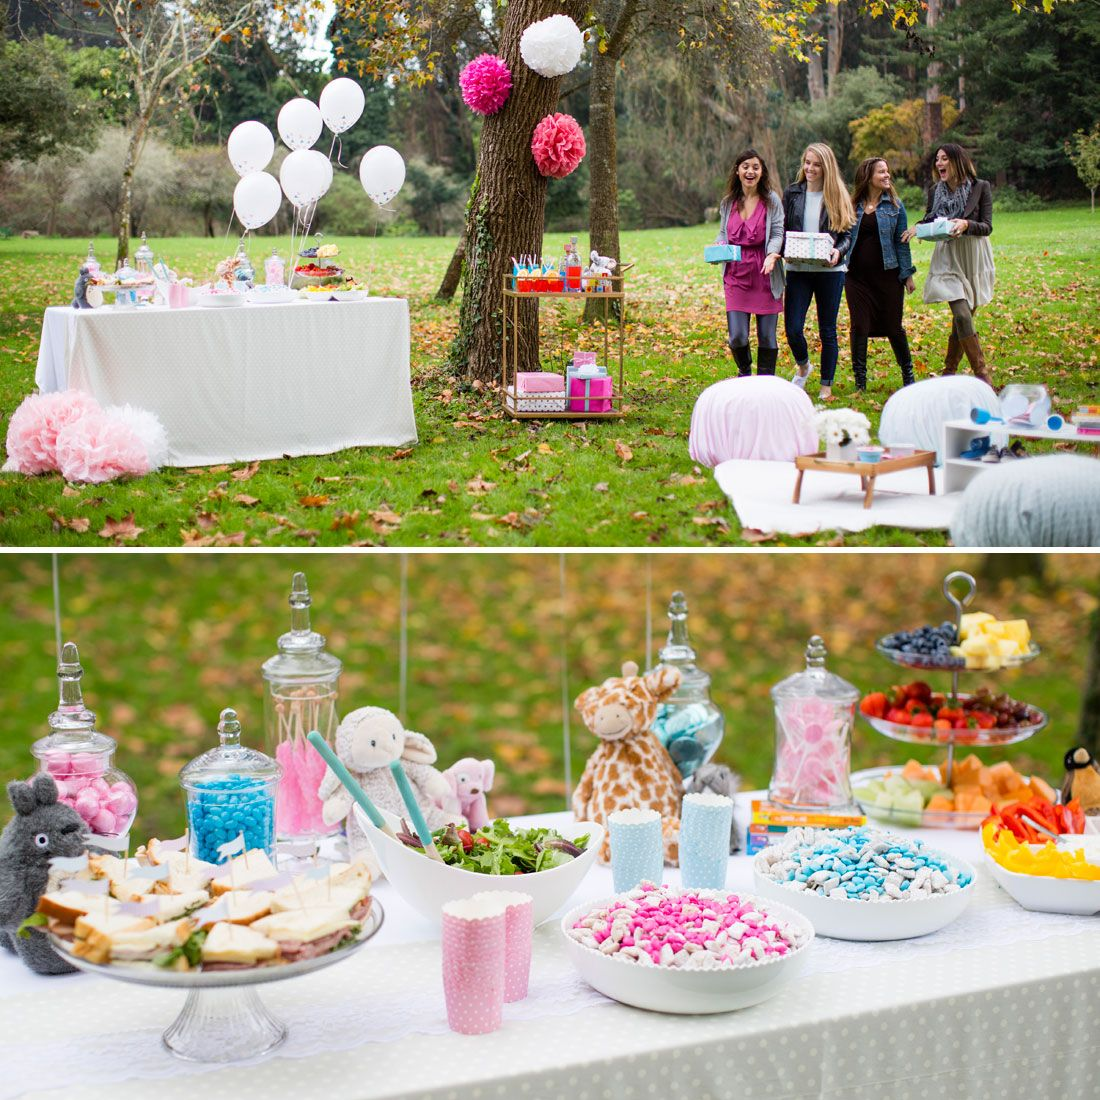 8 Must Haves For A Springy Outdoor Baby Shower Outdoor Baby Shower Decorations Outdoor Baby Shower Park Baby Shower Ideas